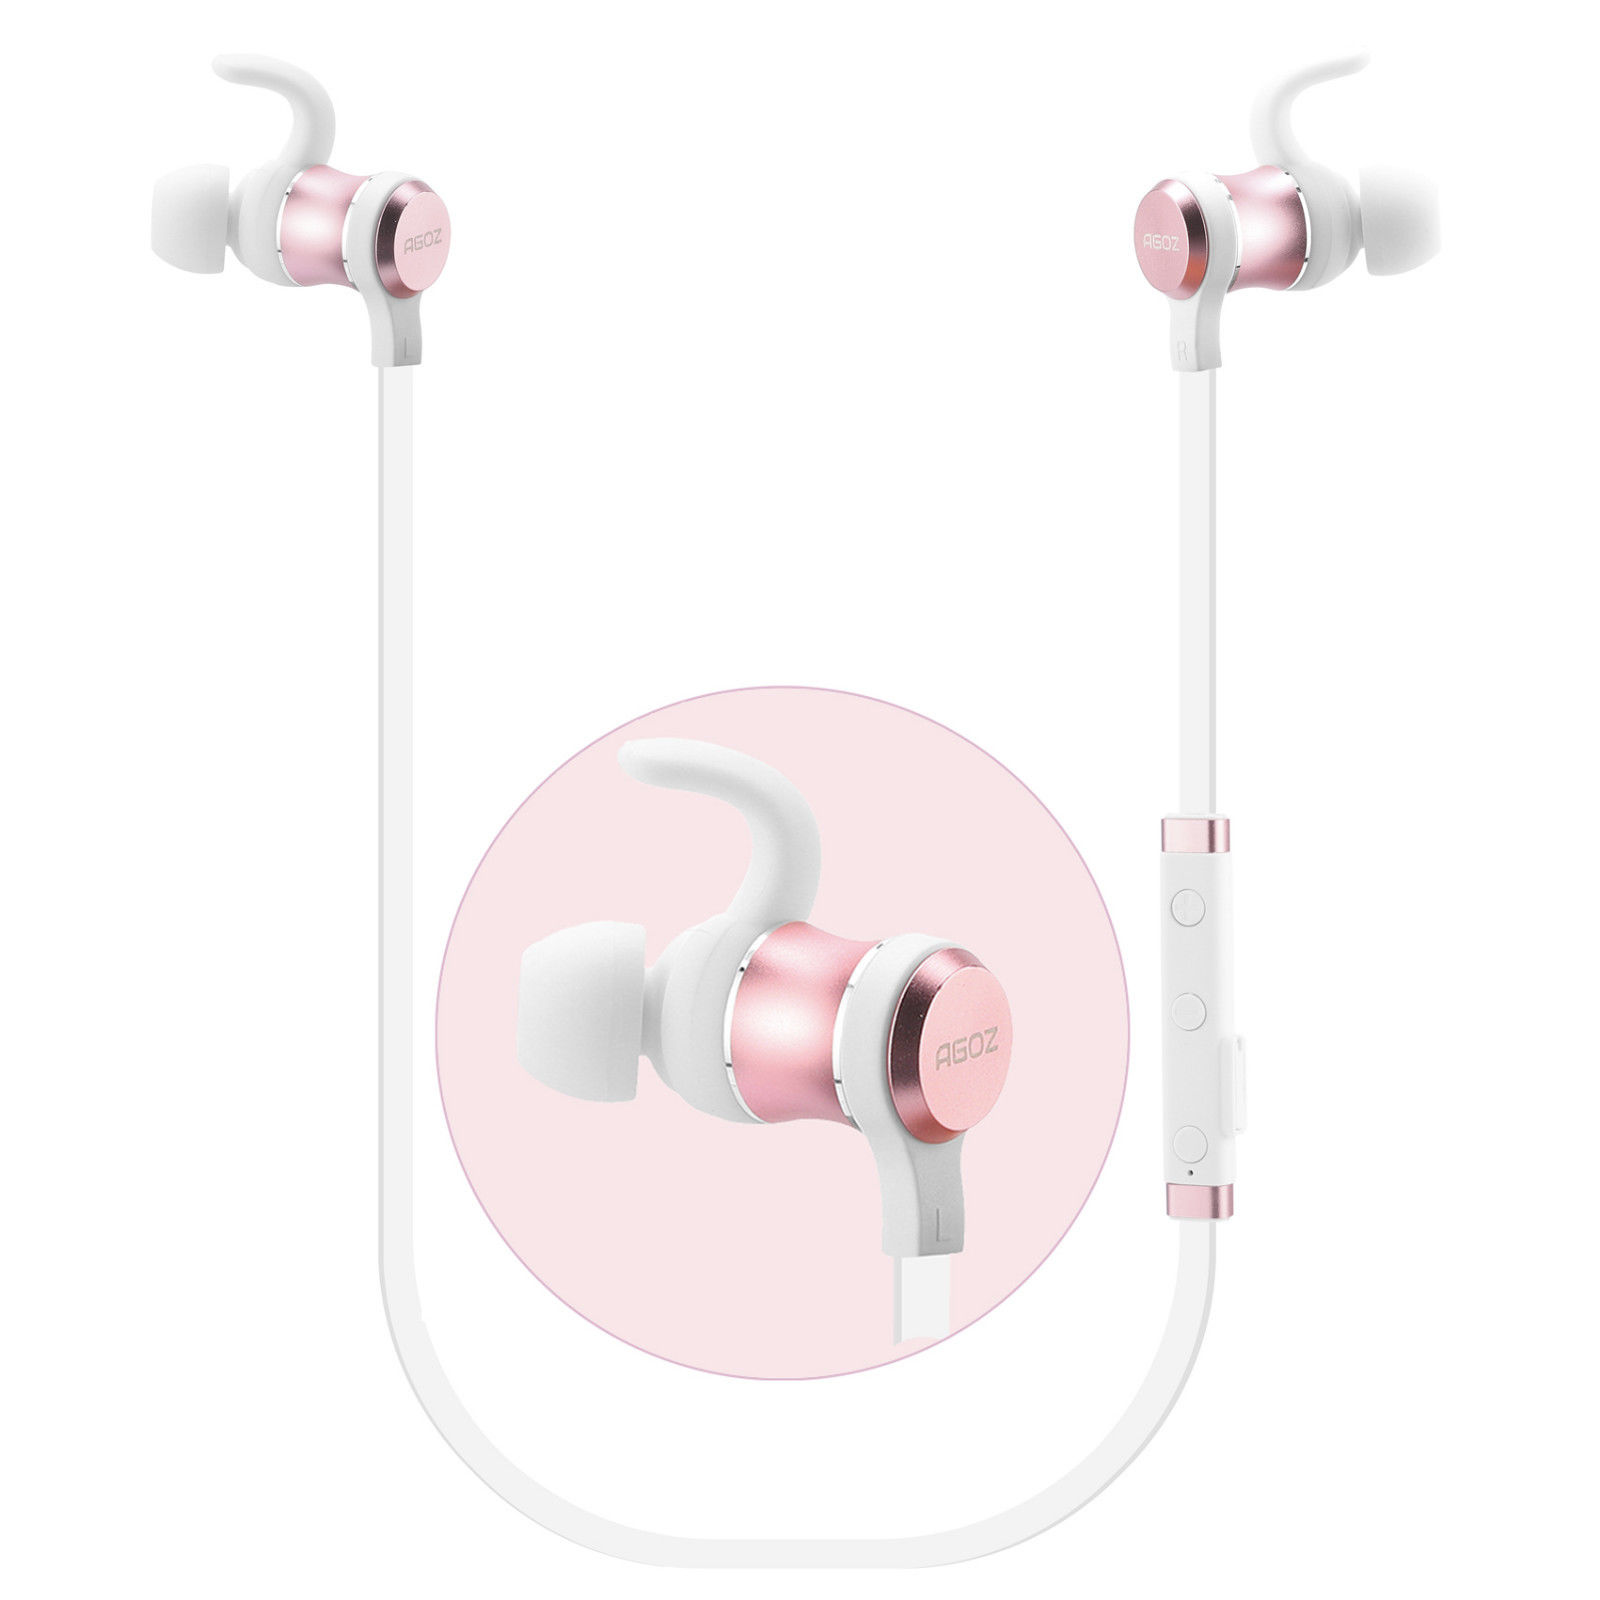 Rose Gold Wireless Headphones Sport Earbuds Bluetooth Headset Noise Cancelling For Apple Iphone 11 11 Pro 11 Pro Max Se 2020 Xs Max Xs Xr X 8 Plus 8 7 Plus 7